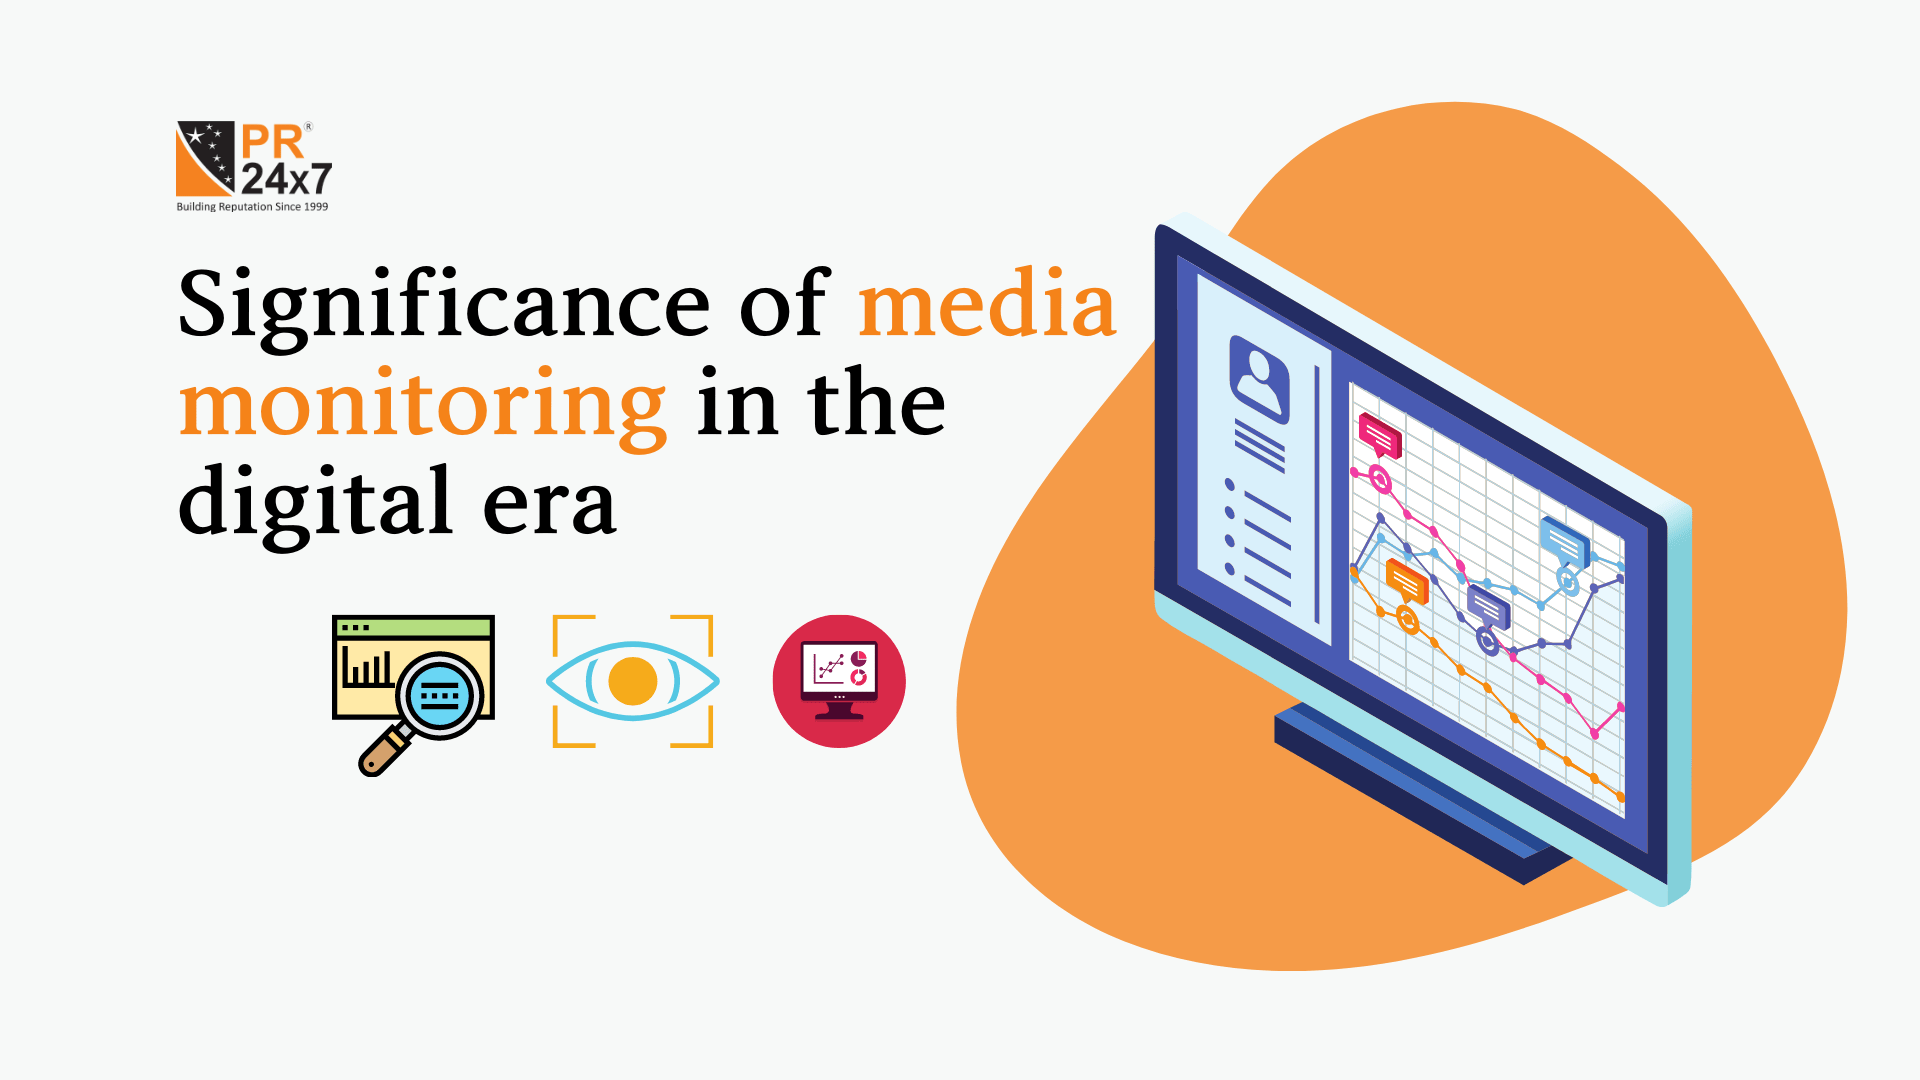 Significance of media monitoring